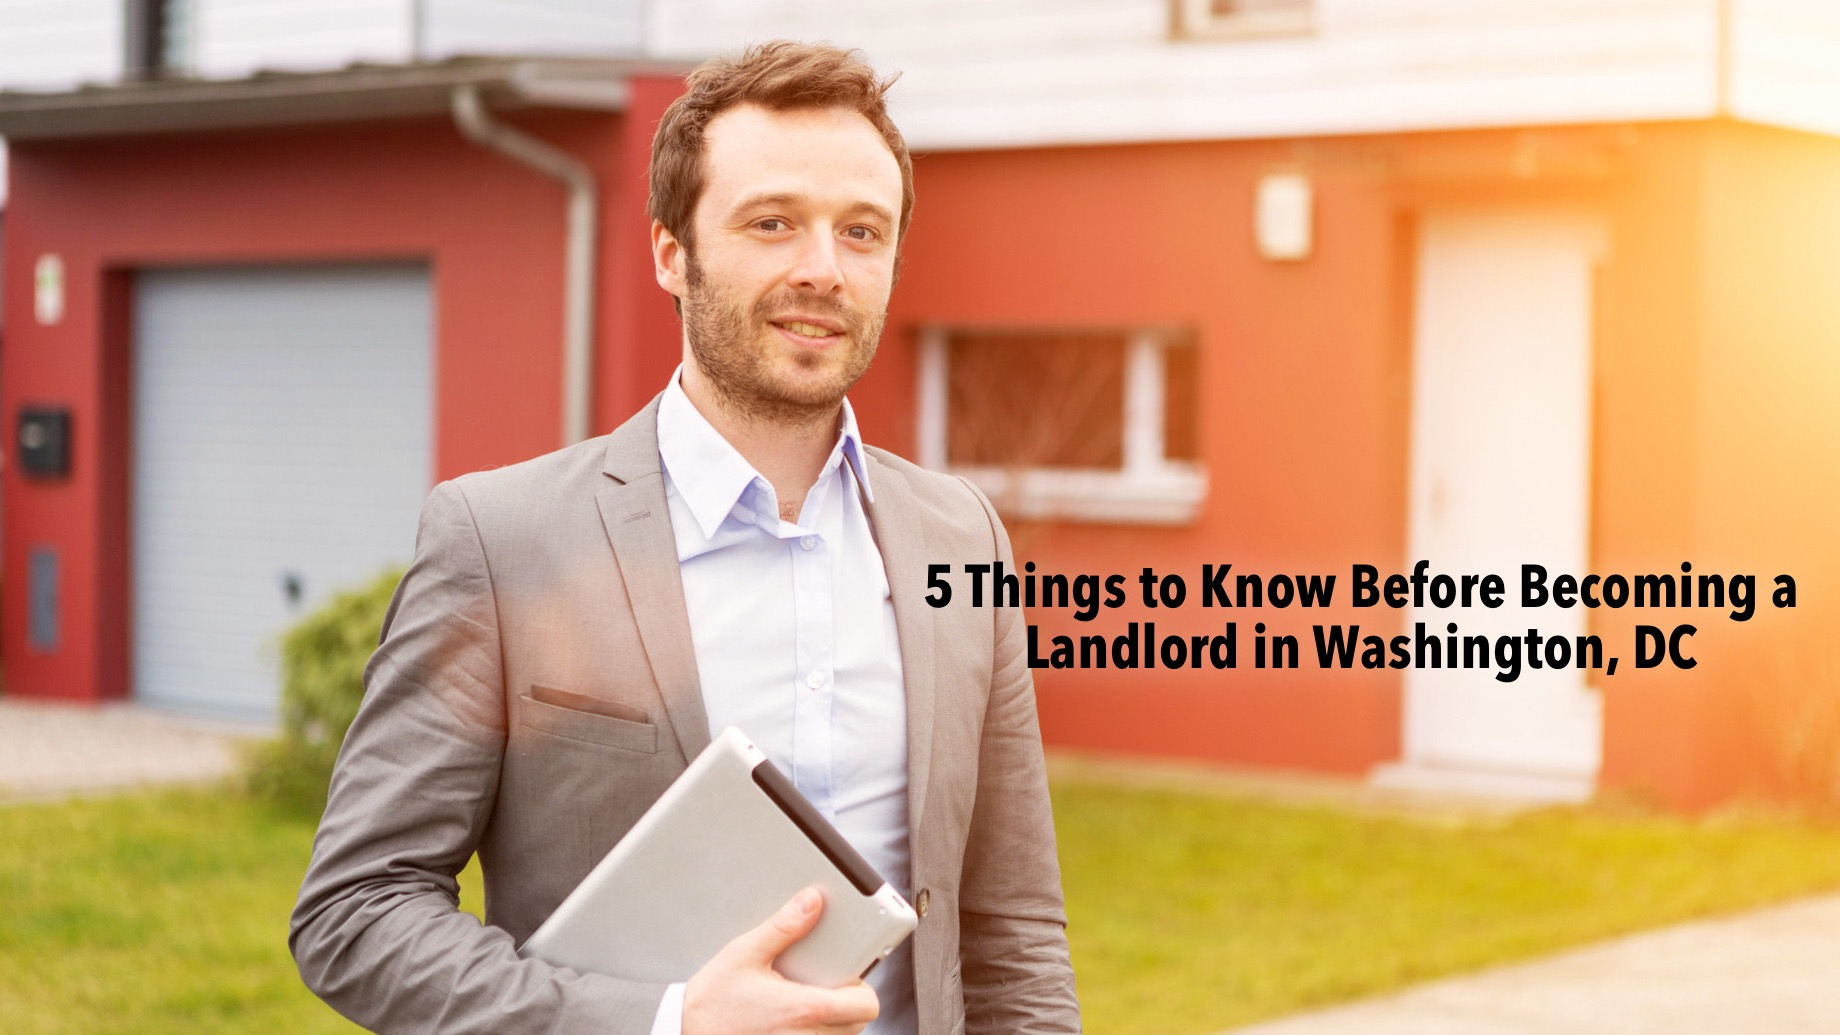 5 Things to Know Before Becoming a Landlord in Washington, DC